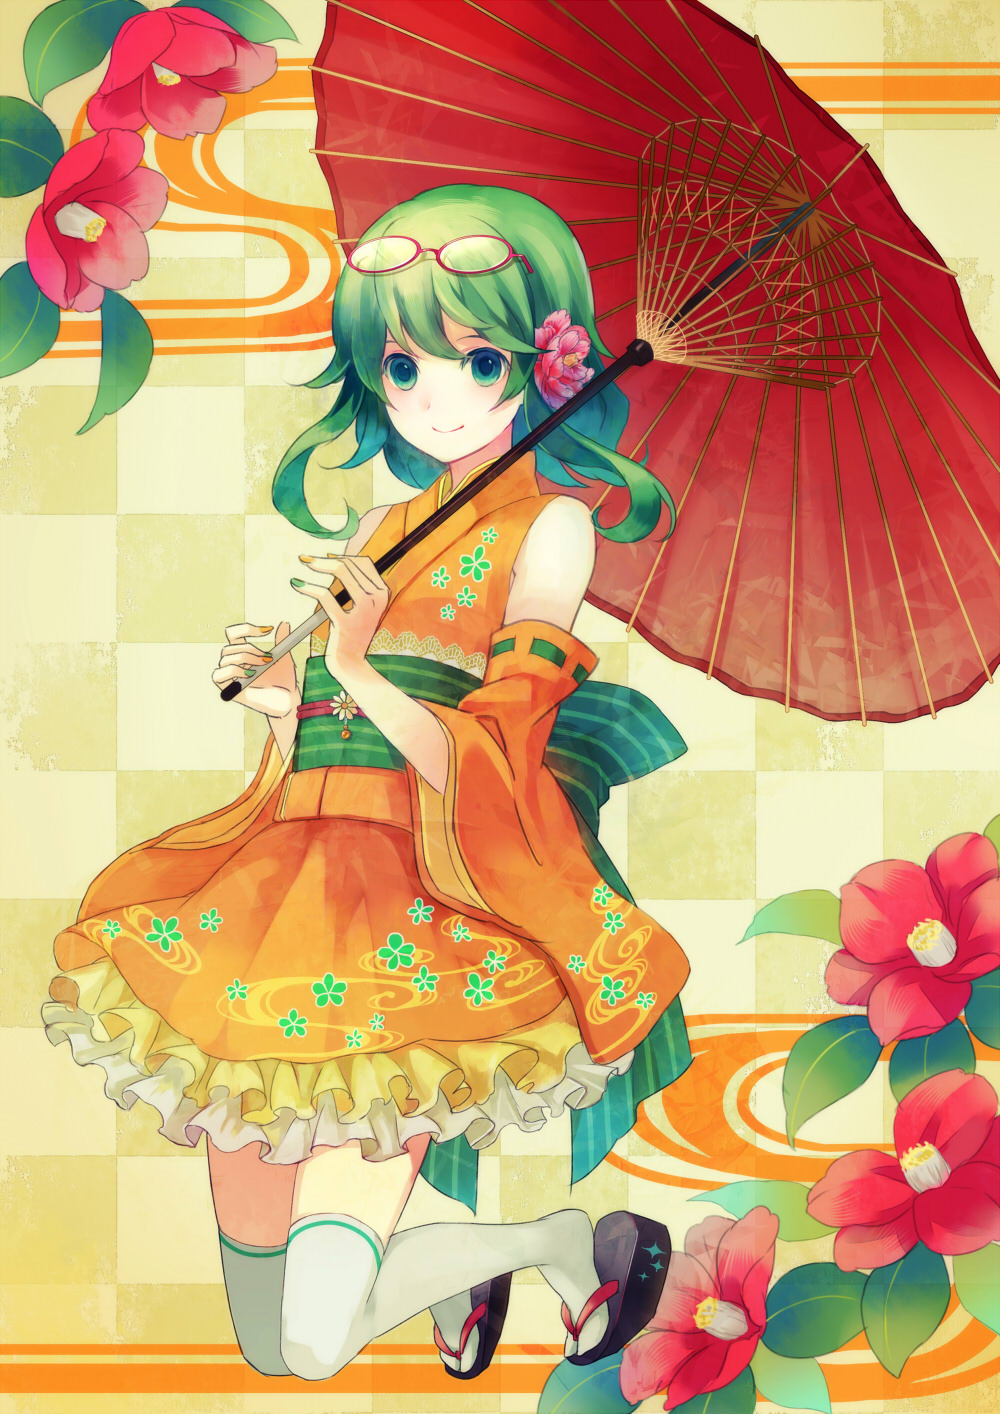 Wallpaper Dark Anime Gumi Vocaloid Mobile Wallpaper 1469828 Zerochan